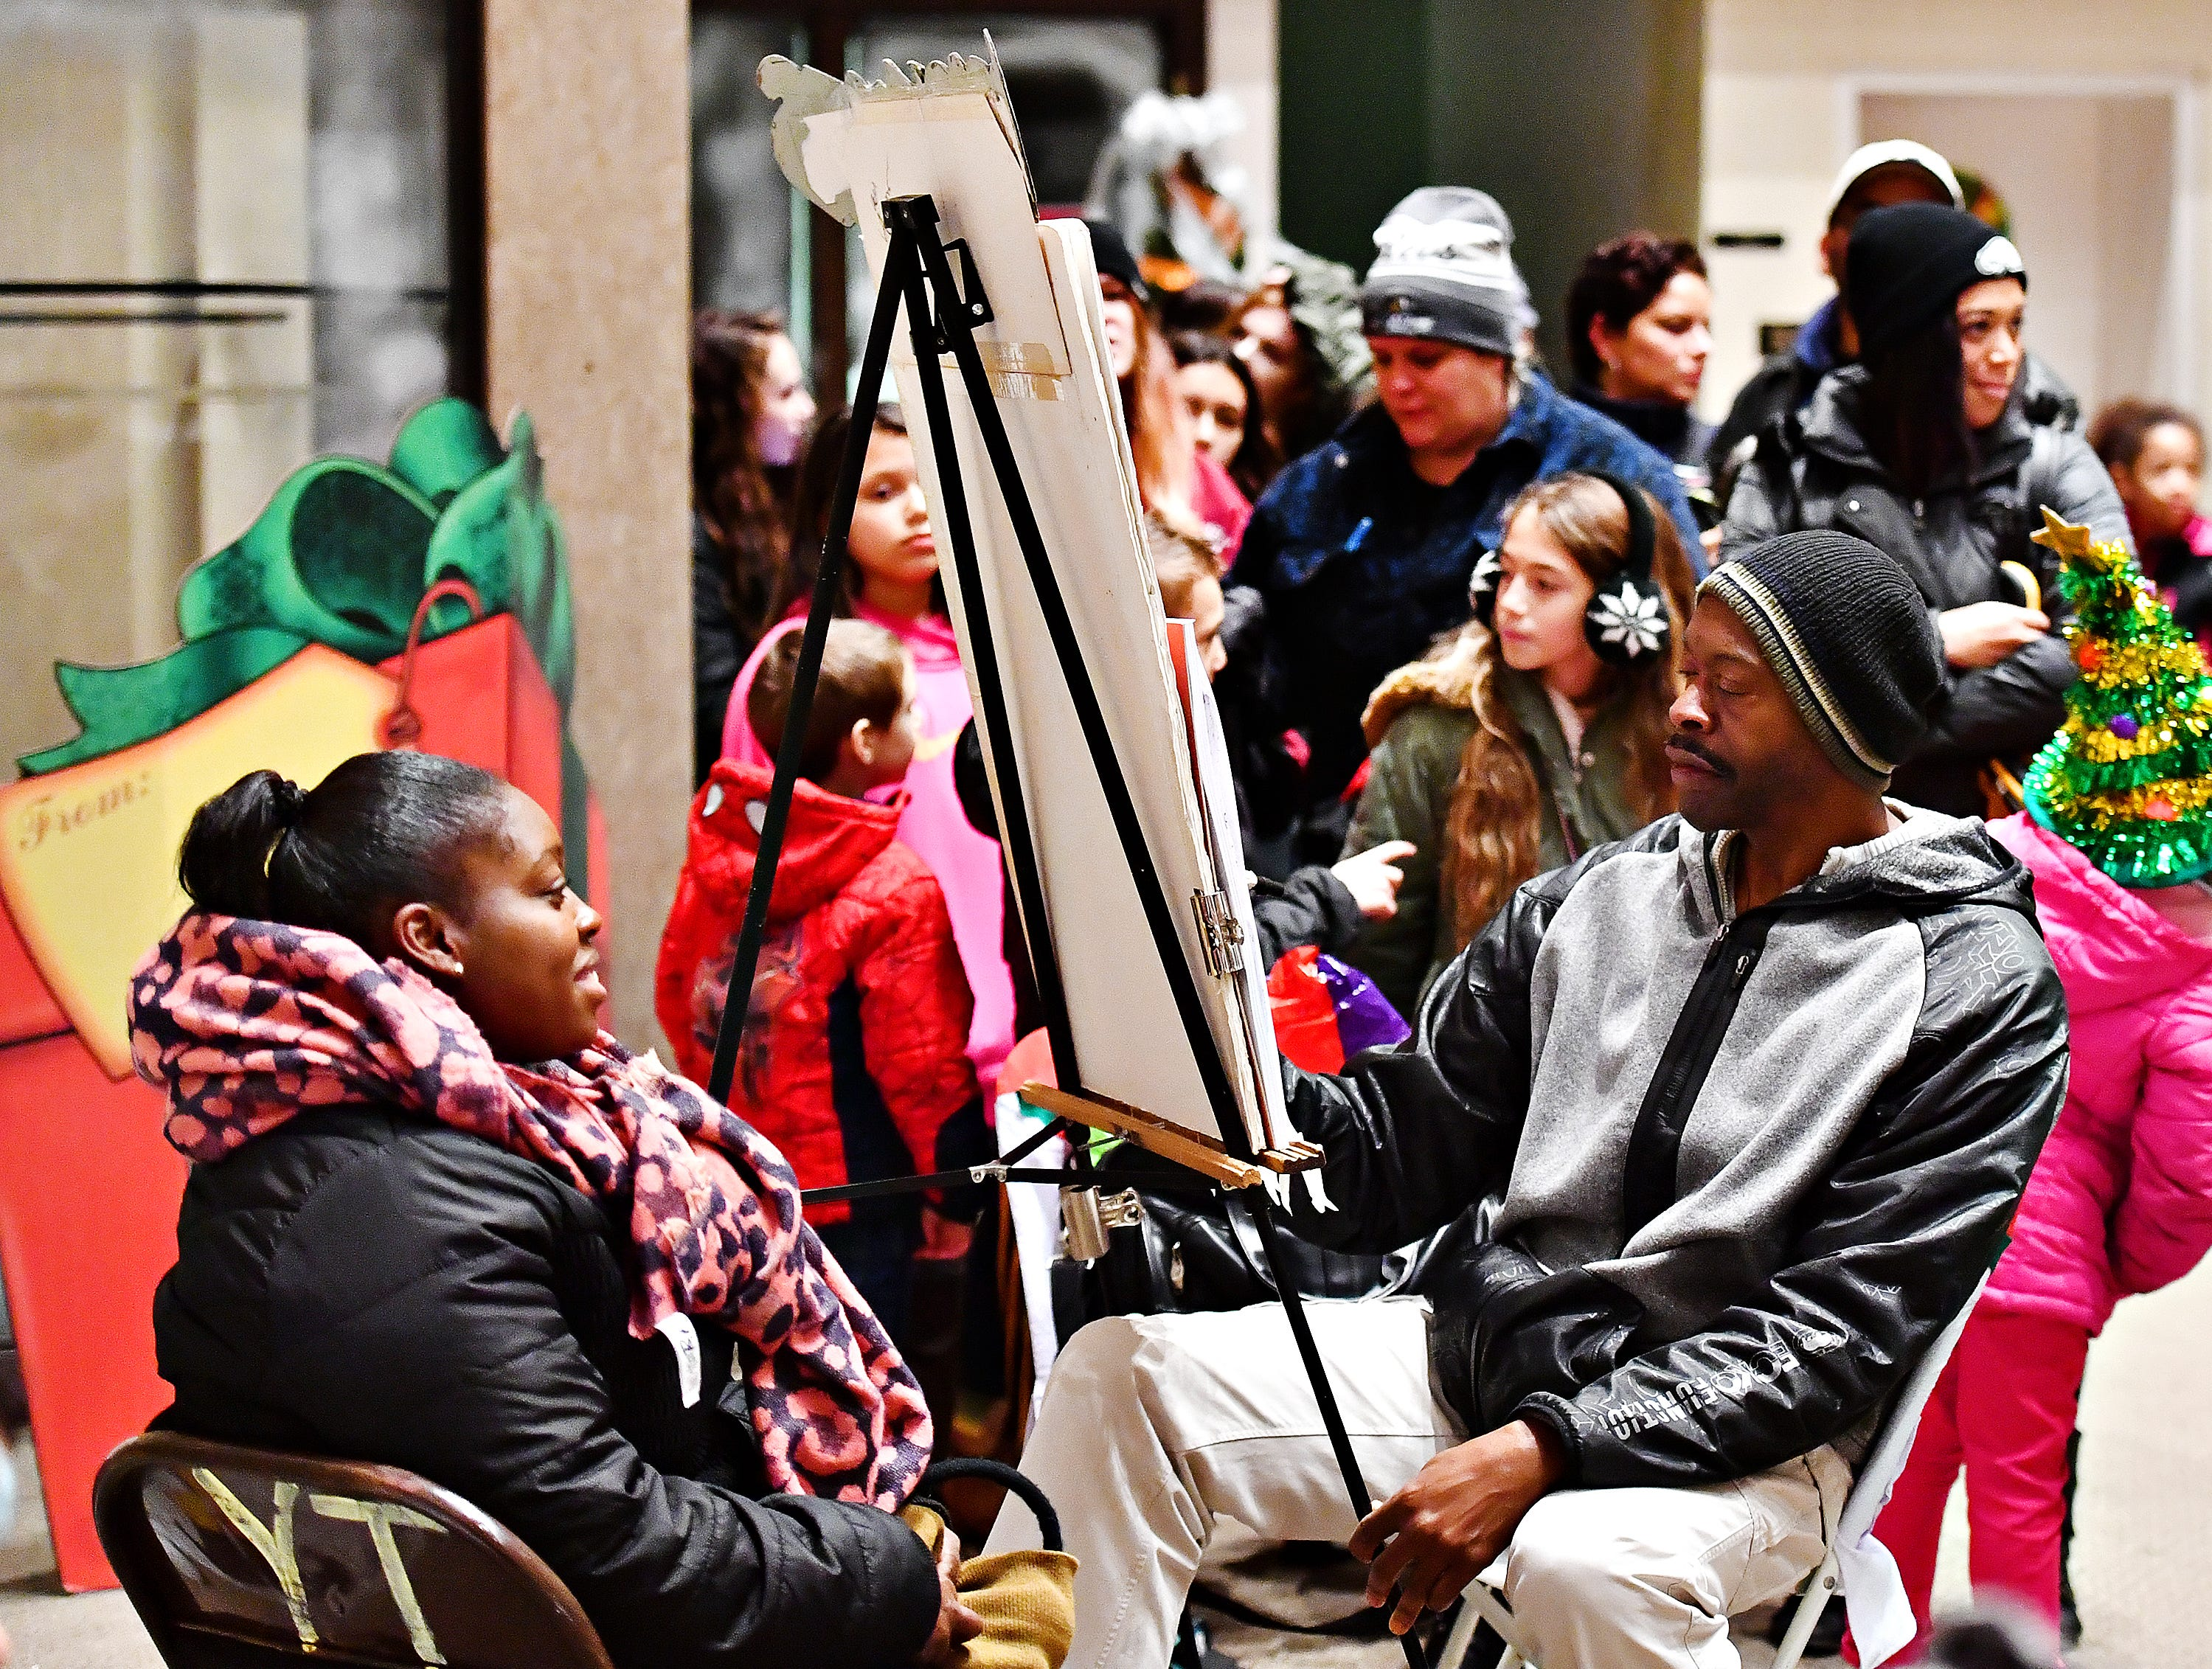 Francine Alston, left, of York City, sits while Artist Mel Conrad draws a caricature of her at the Photo Opp Stop during Light Up York in York City, Saturday, Dec. 1, 2018. Dawn J. Sagert photo